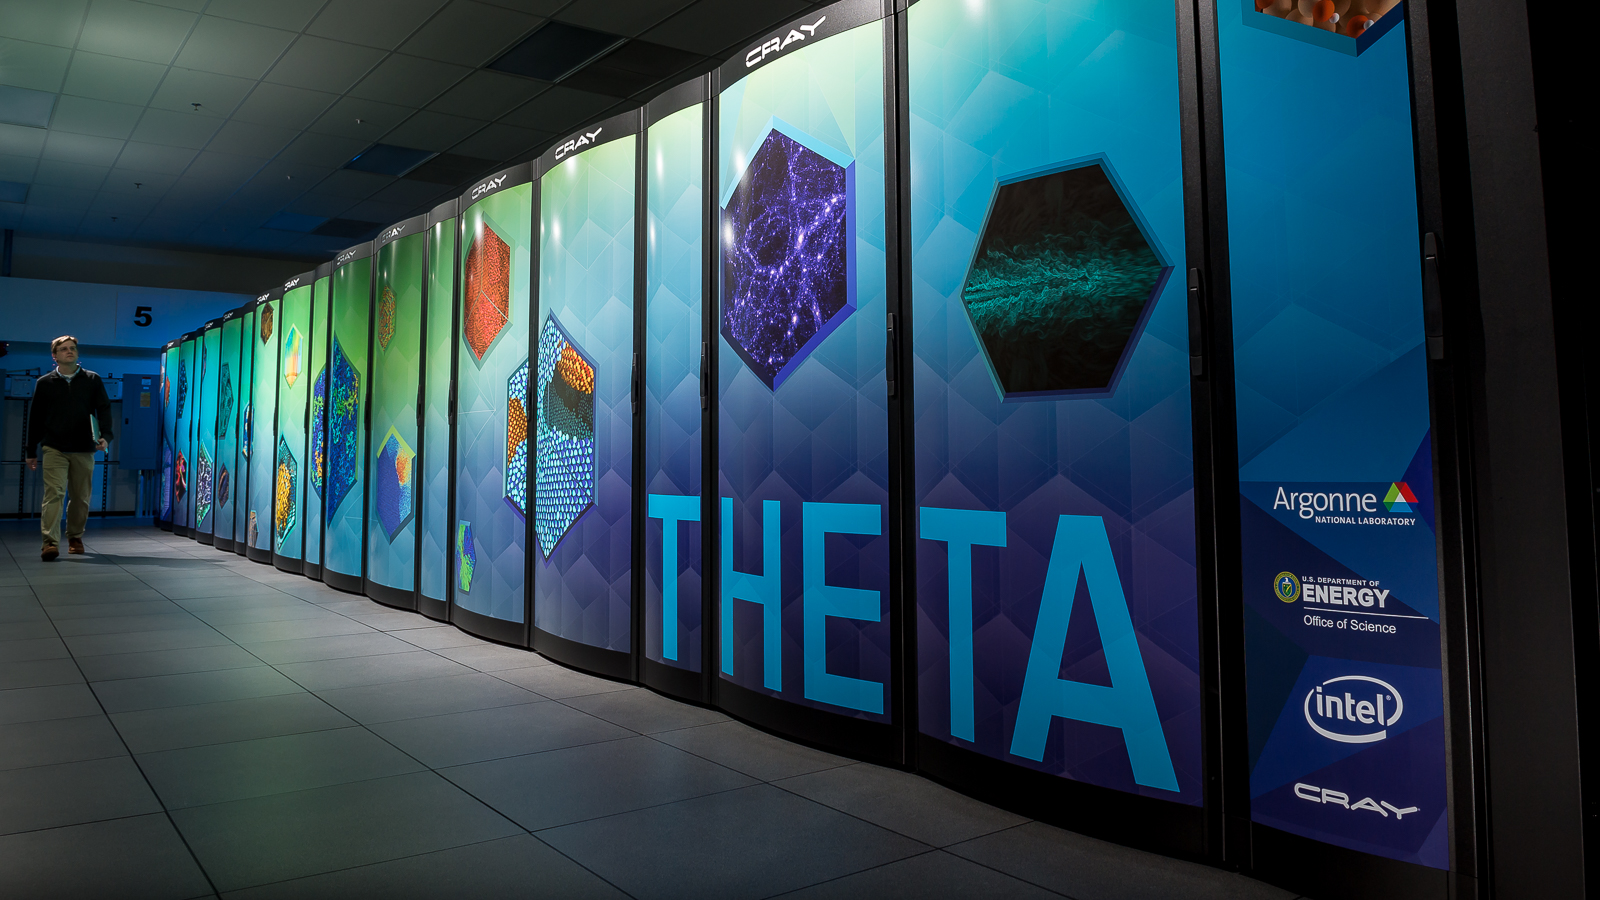 Argonne researchers are using the Theta supercomputer to model potential drug candidates that could serve as antivirals against COVID-19. (Image by Argonne National Laboratory.)